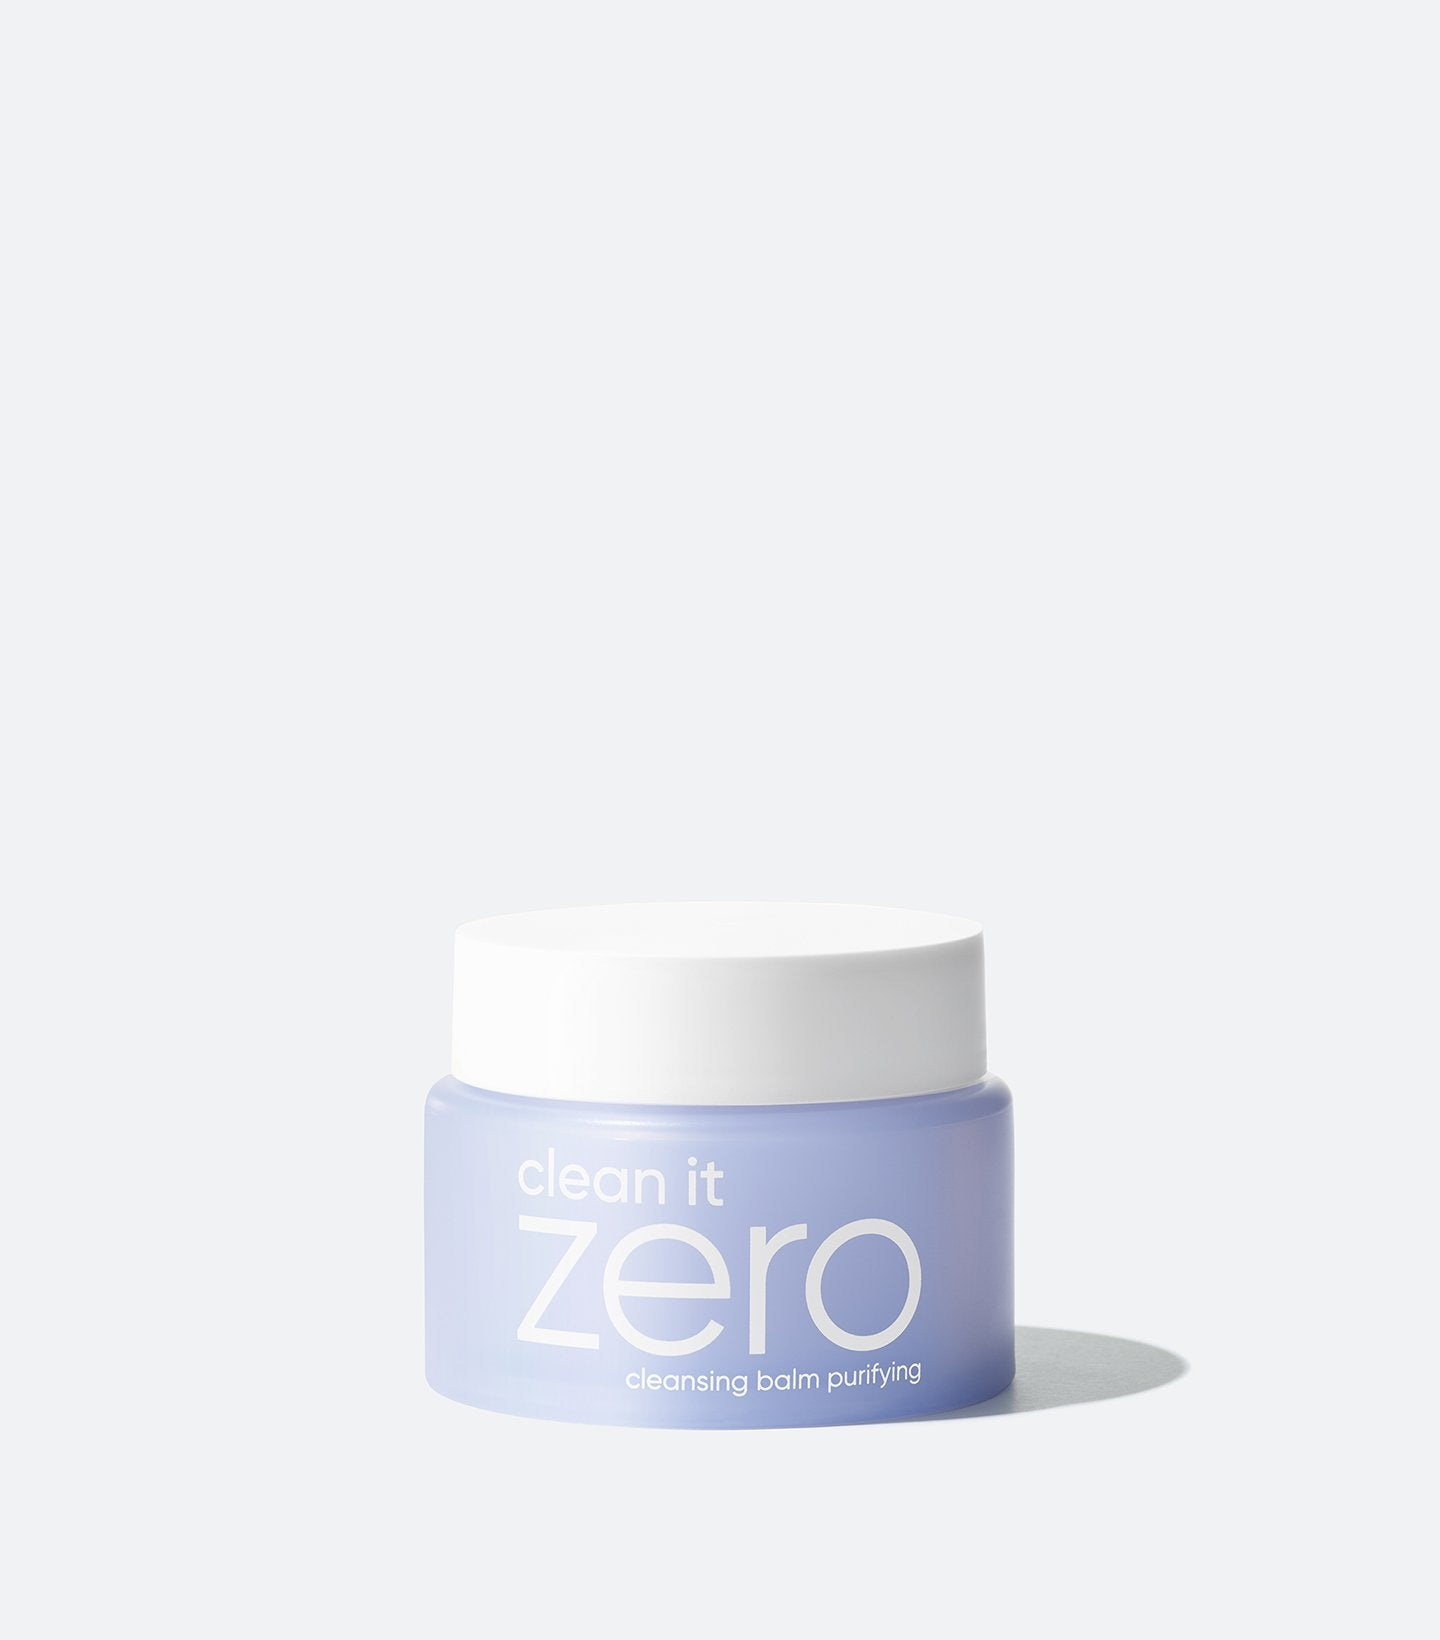 Clean It Zero Cleansing Balm, Purifying